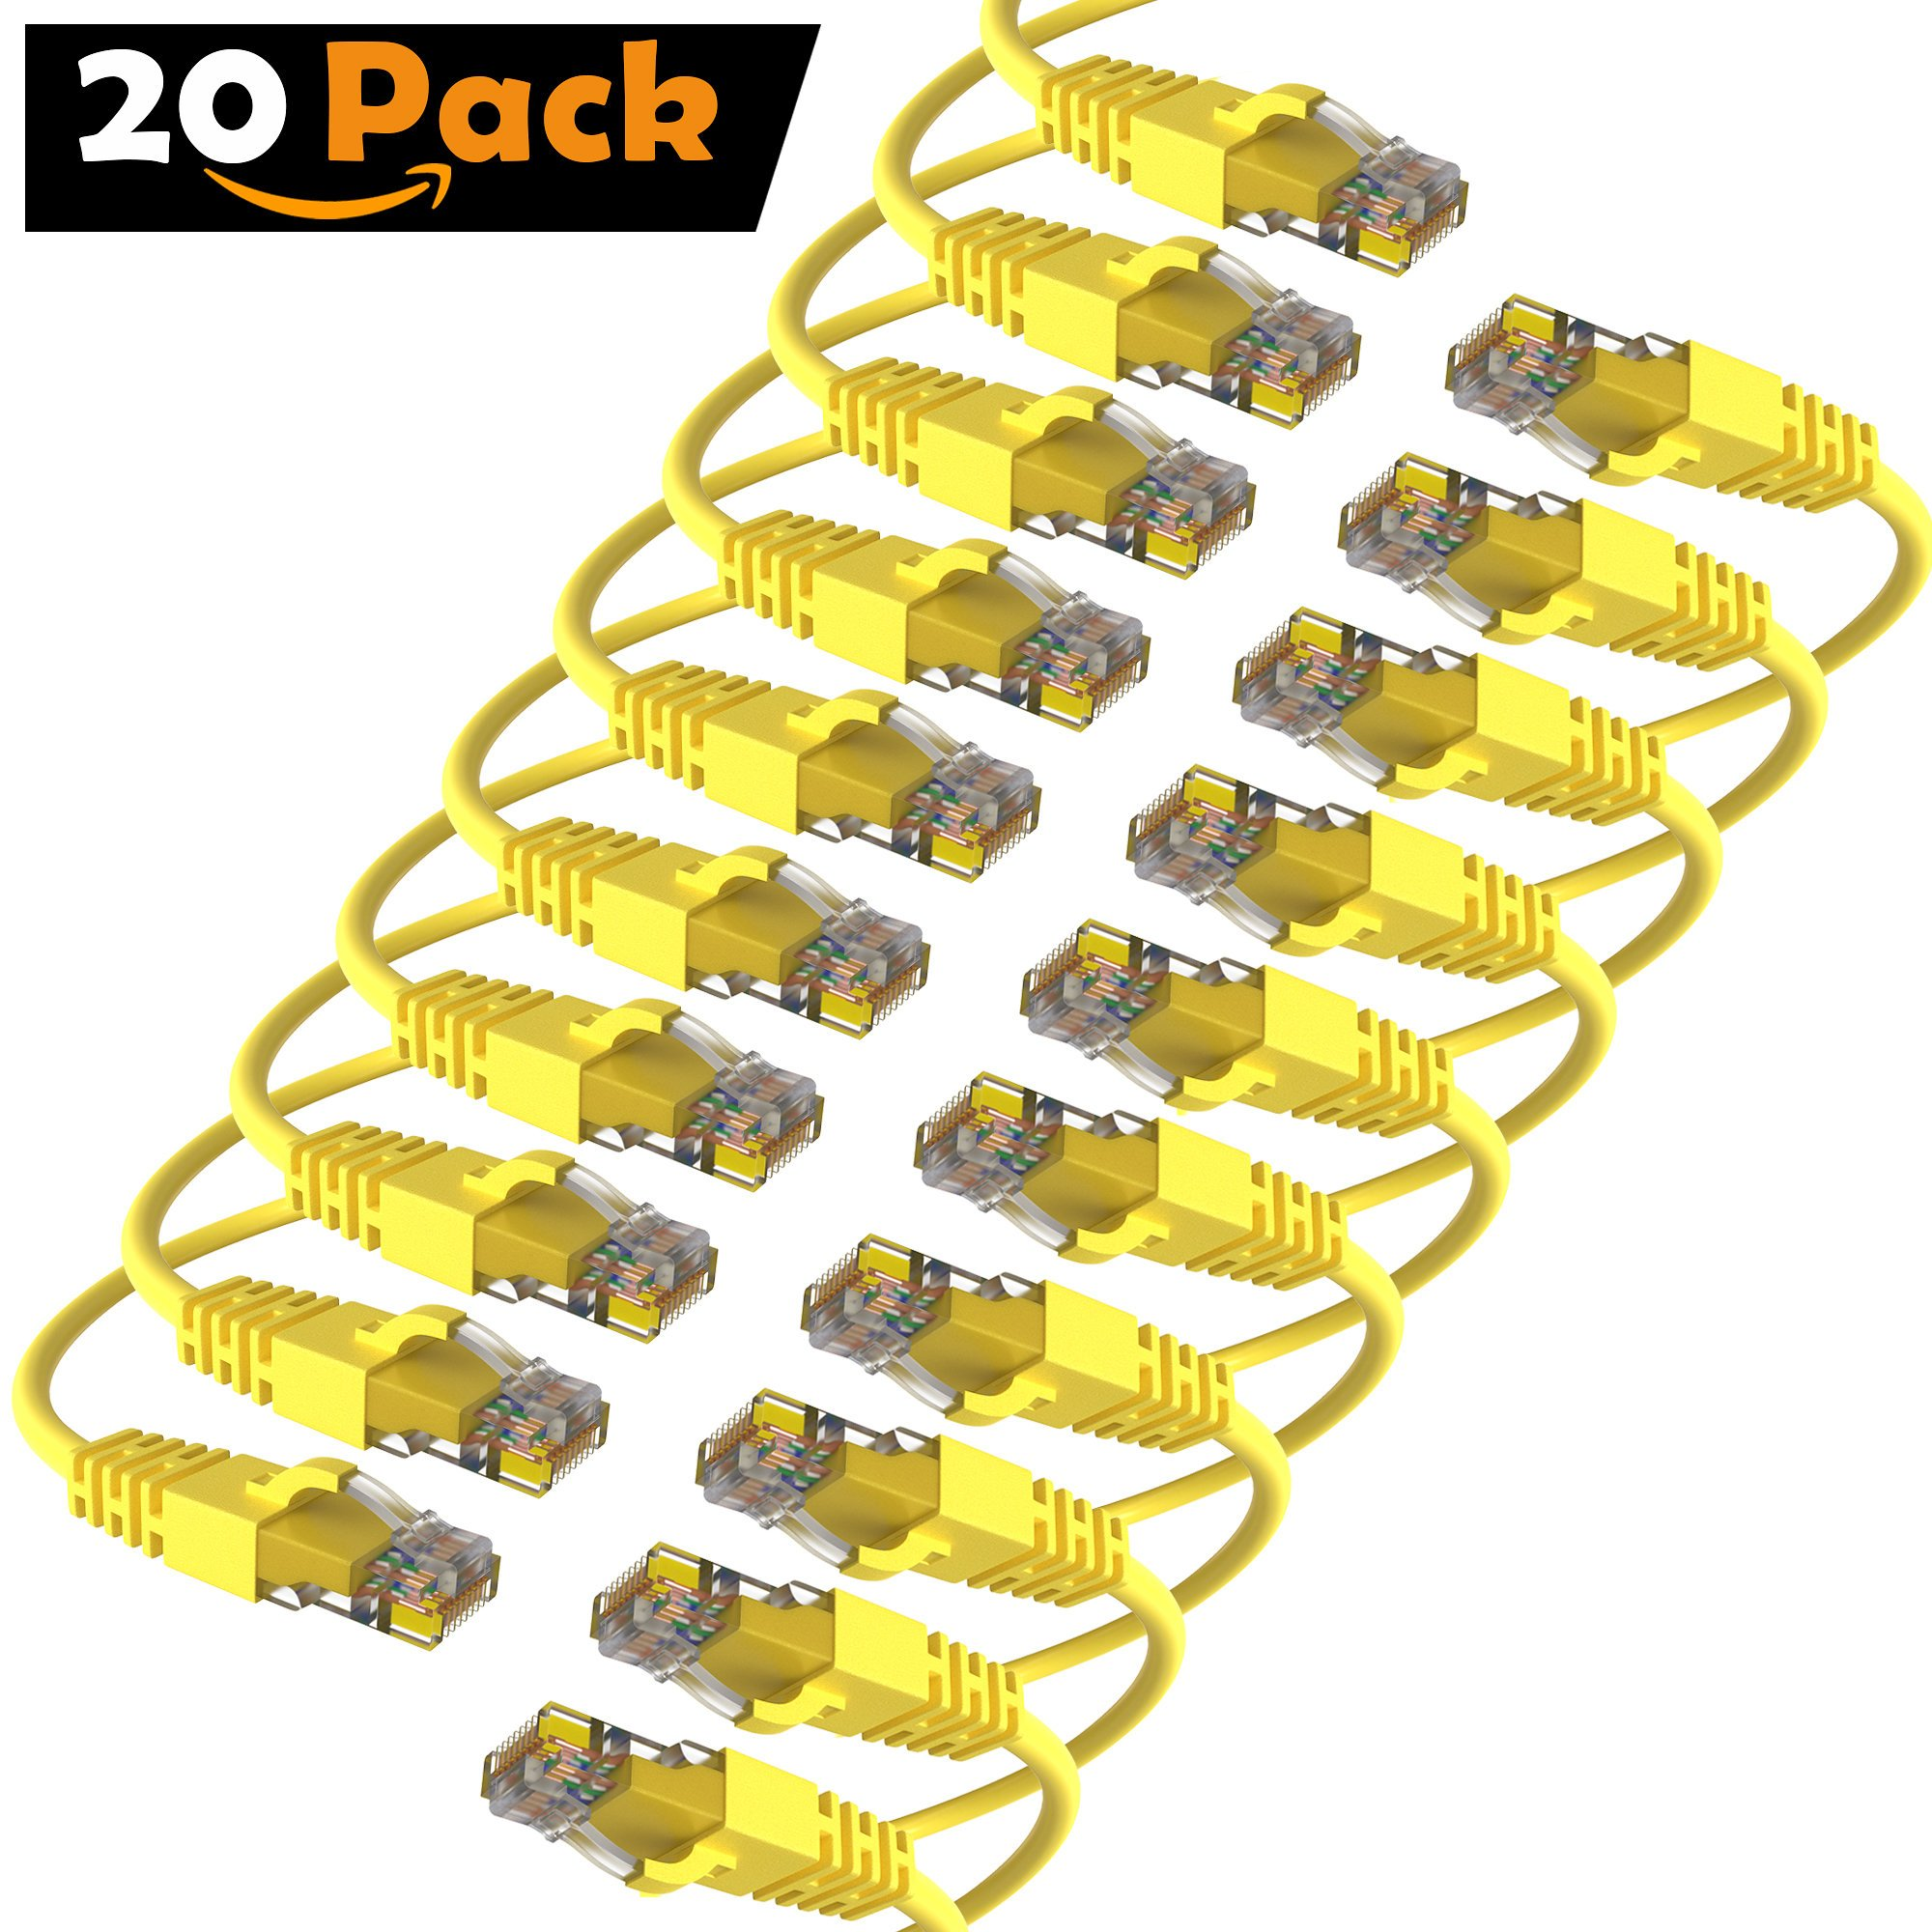 Maximm Cat6 Snagless Ethernet Cable - 25 Feet - Yellow - [20 Pack] - Pure Copper - UL Listed - Cable Ties Included by Maximm (Image #1)